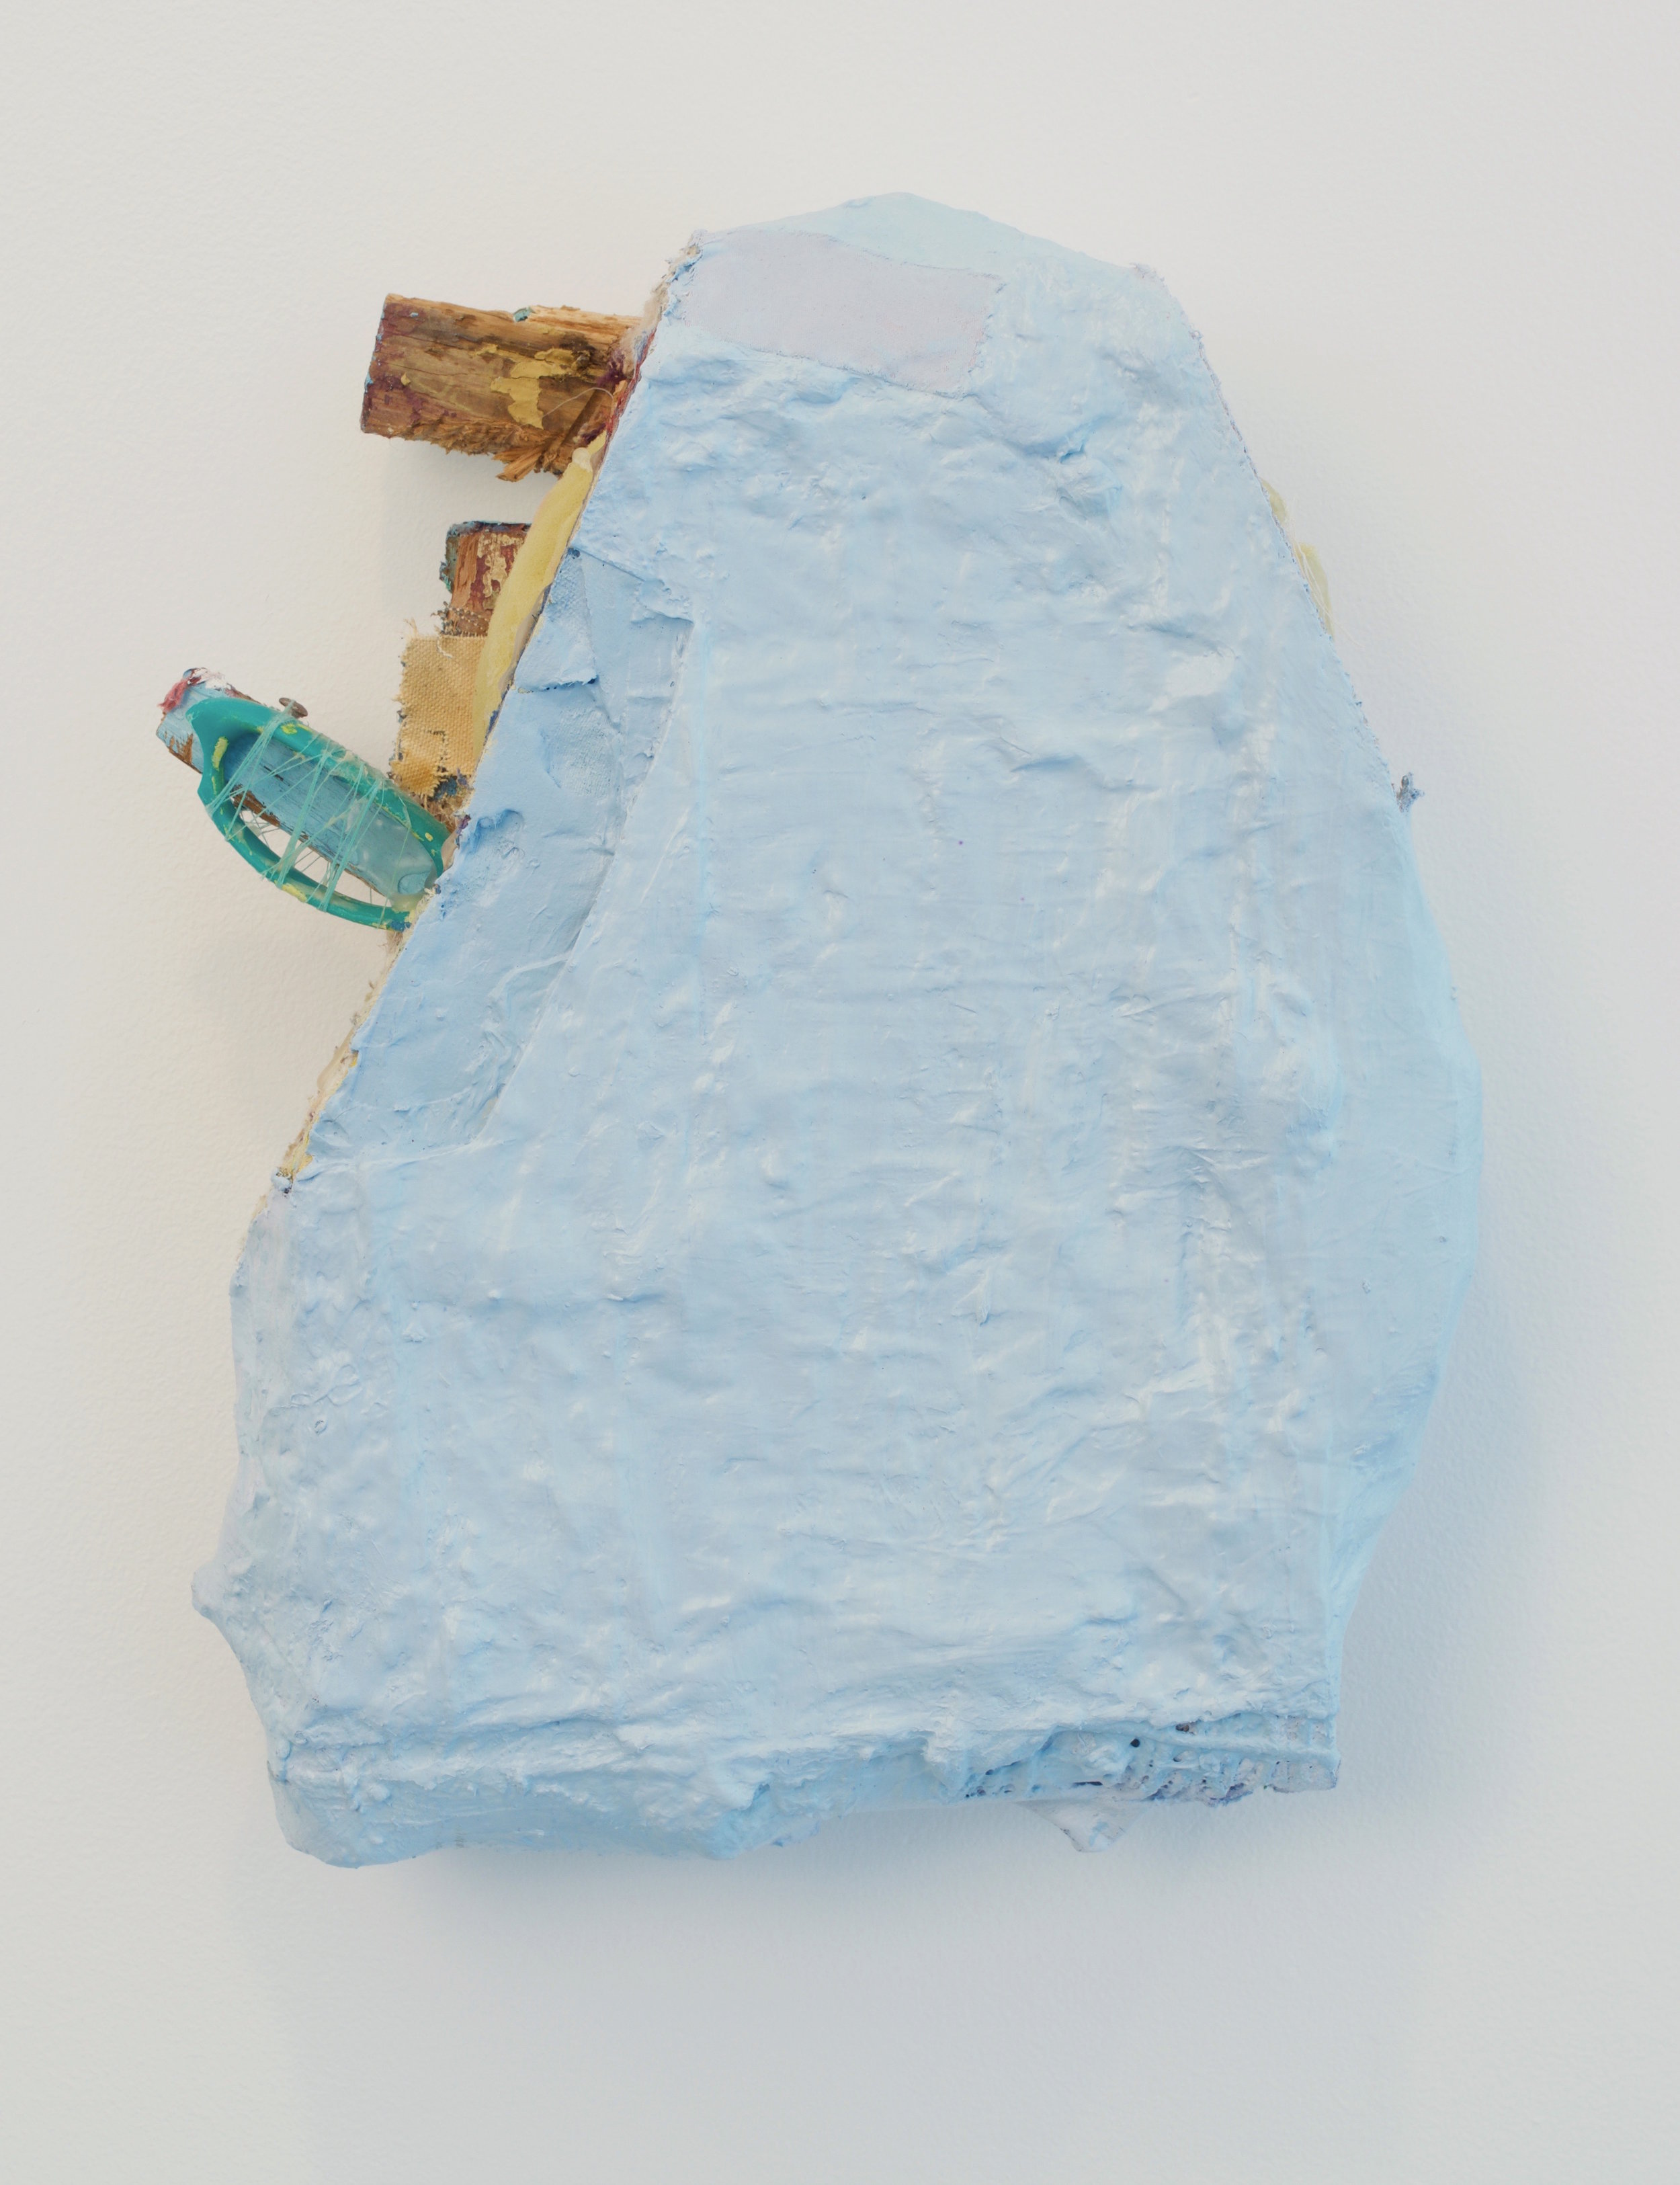 Jamey Hart, Cloud Daddy 2016. Acrylic, Glues, Fabrics, Scissor Handles, Wood, foam, Other Things. 17 x 12 x 4 inches.